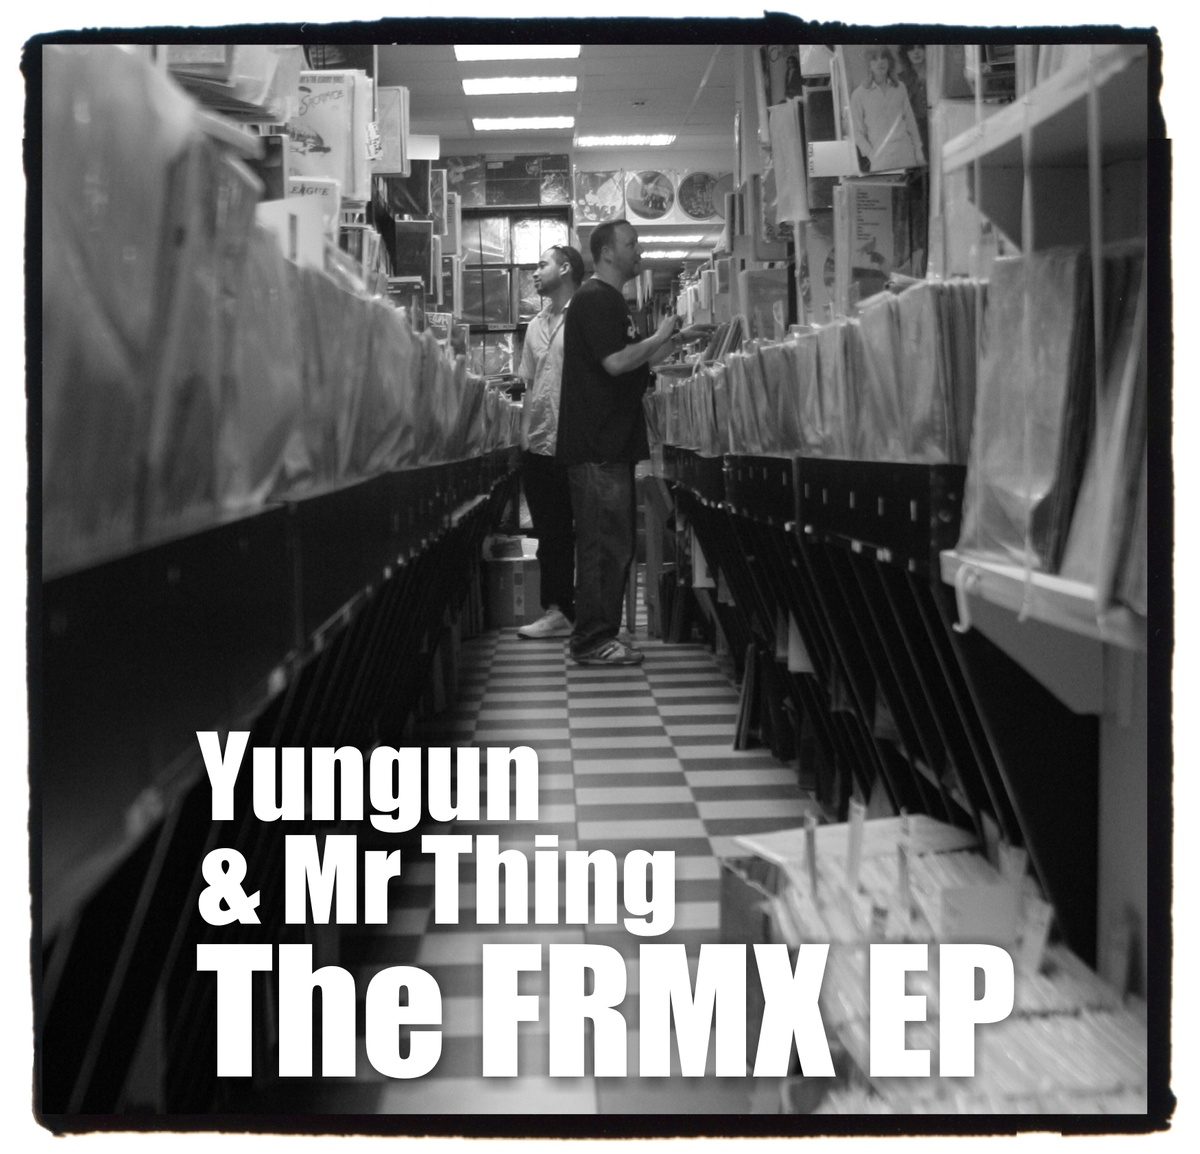 Yungun & Mr Thing - The FRMX E.P.